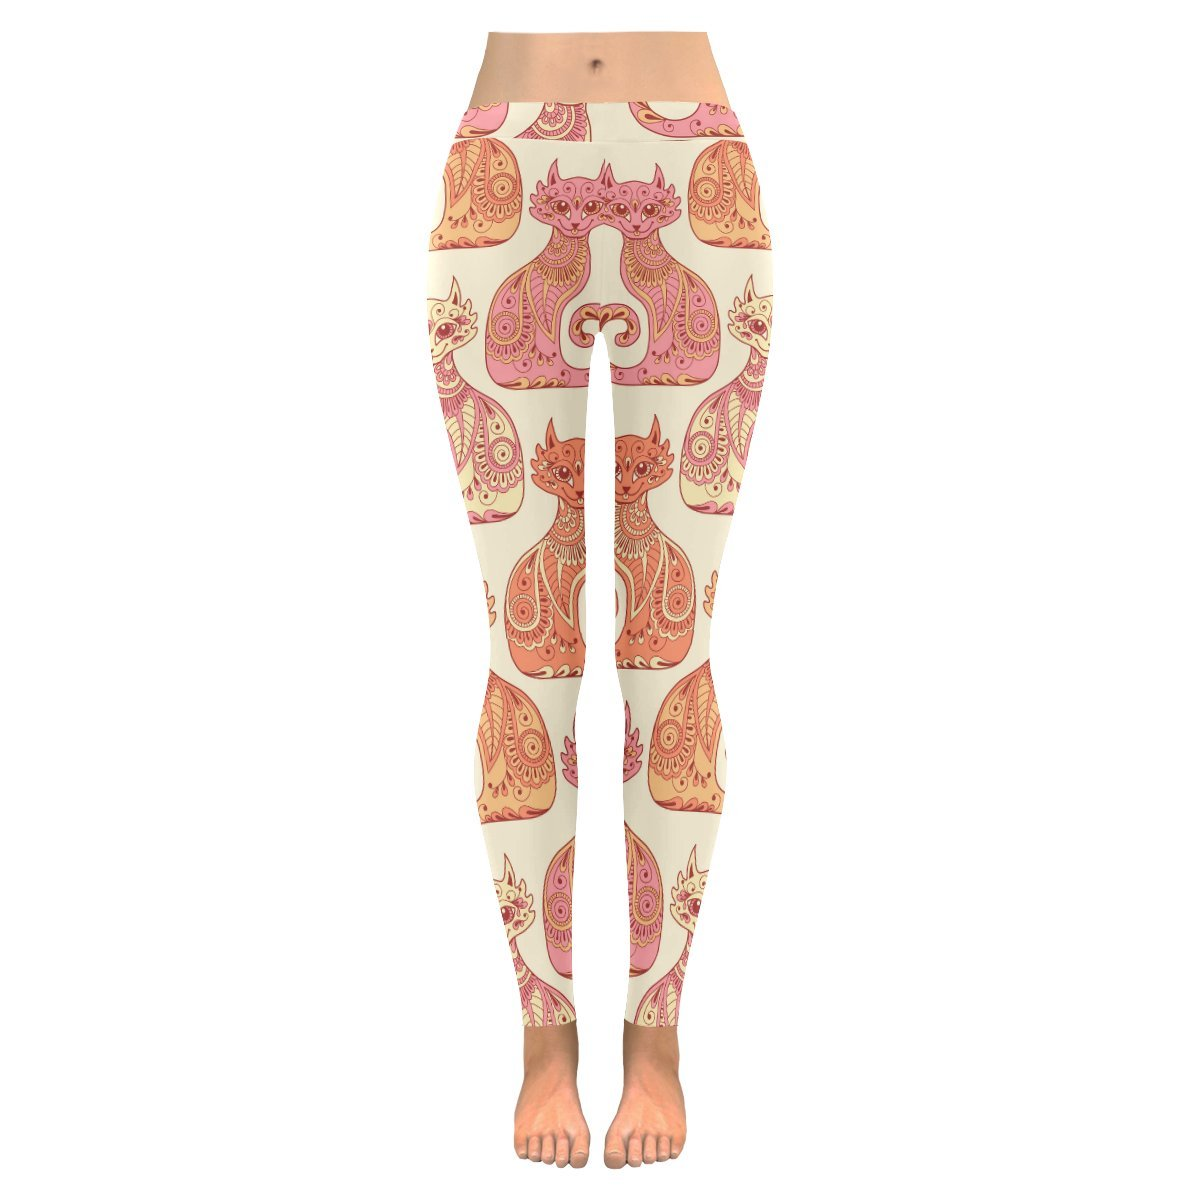 InterestPrint Beautiful Cats in The Ethnic Style Womens Outdoor Leggings:XXS-5XL